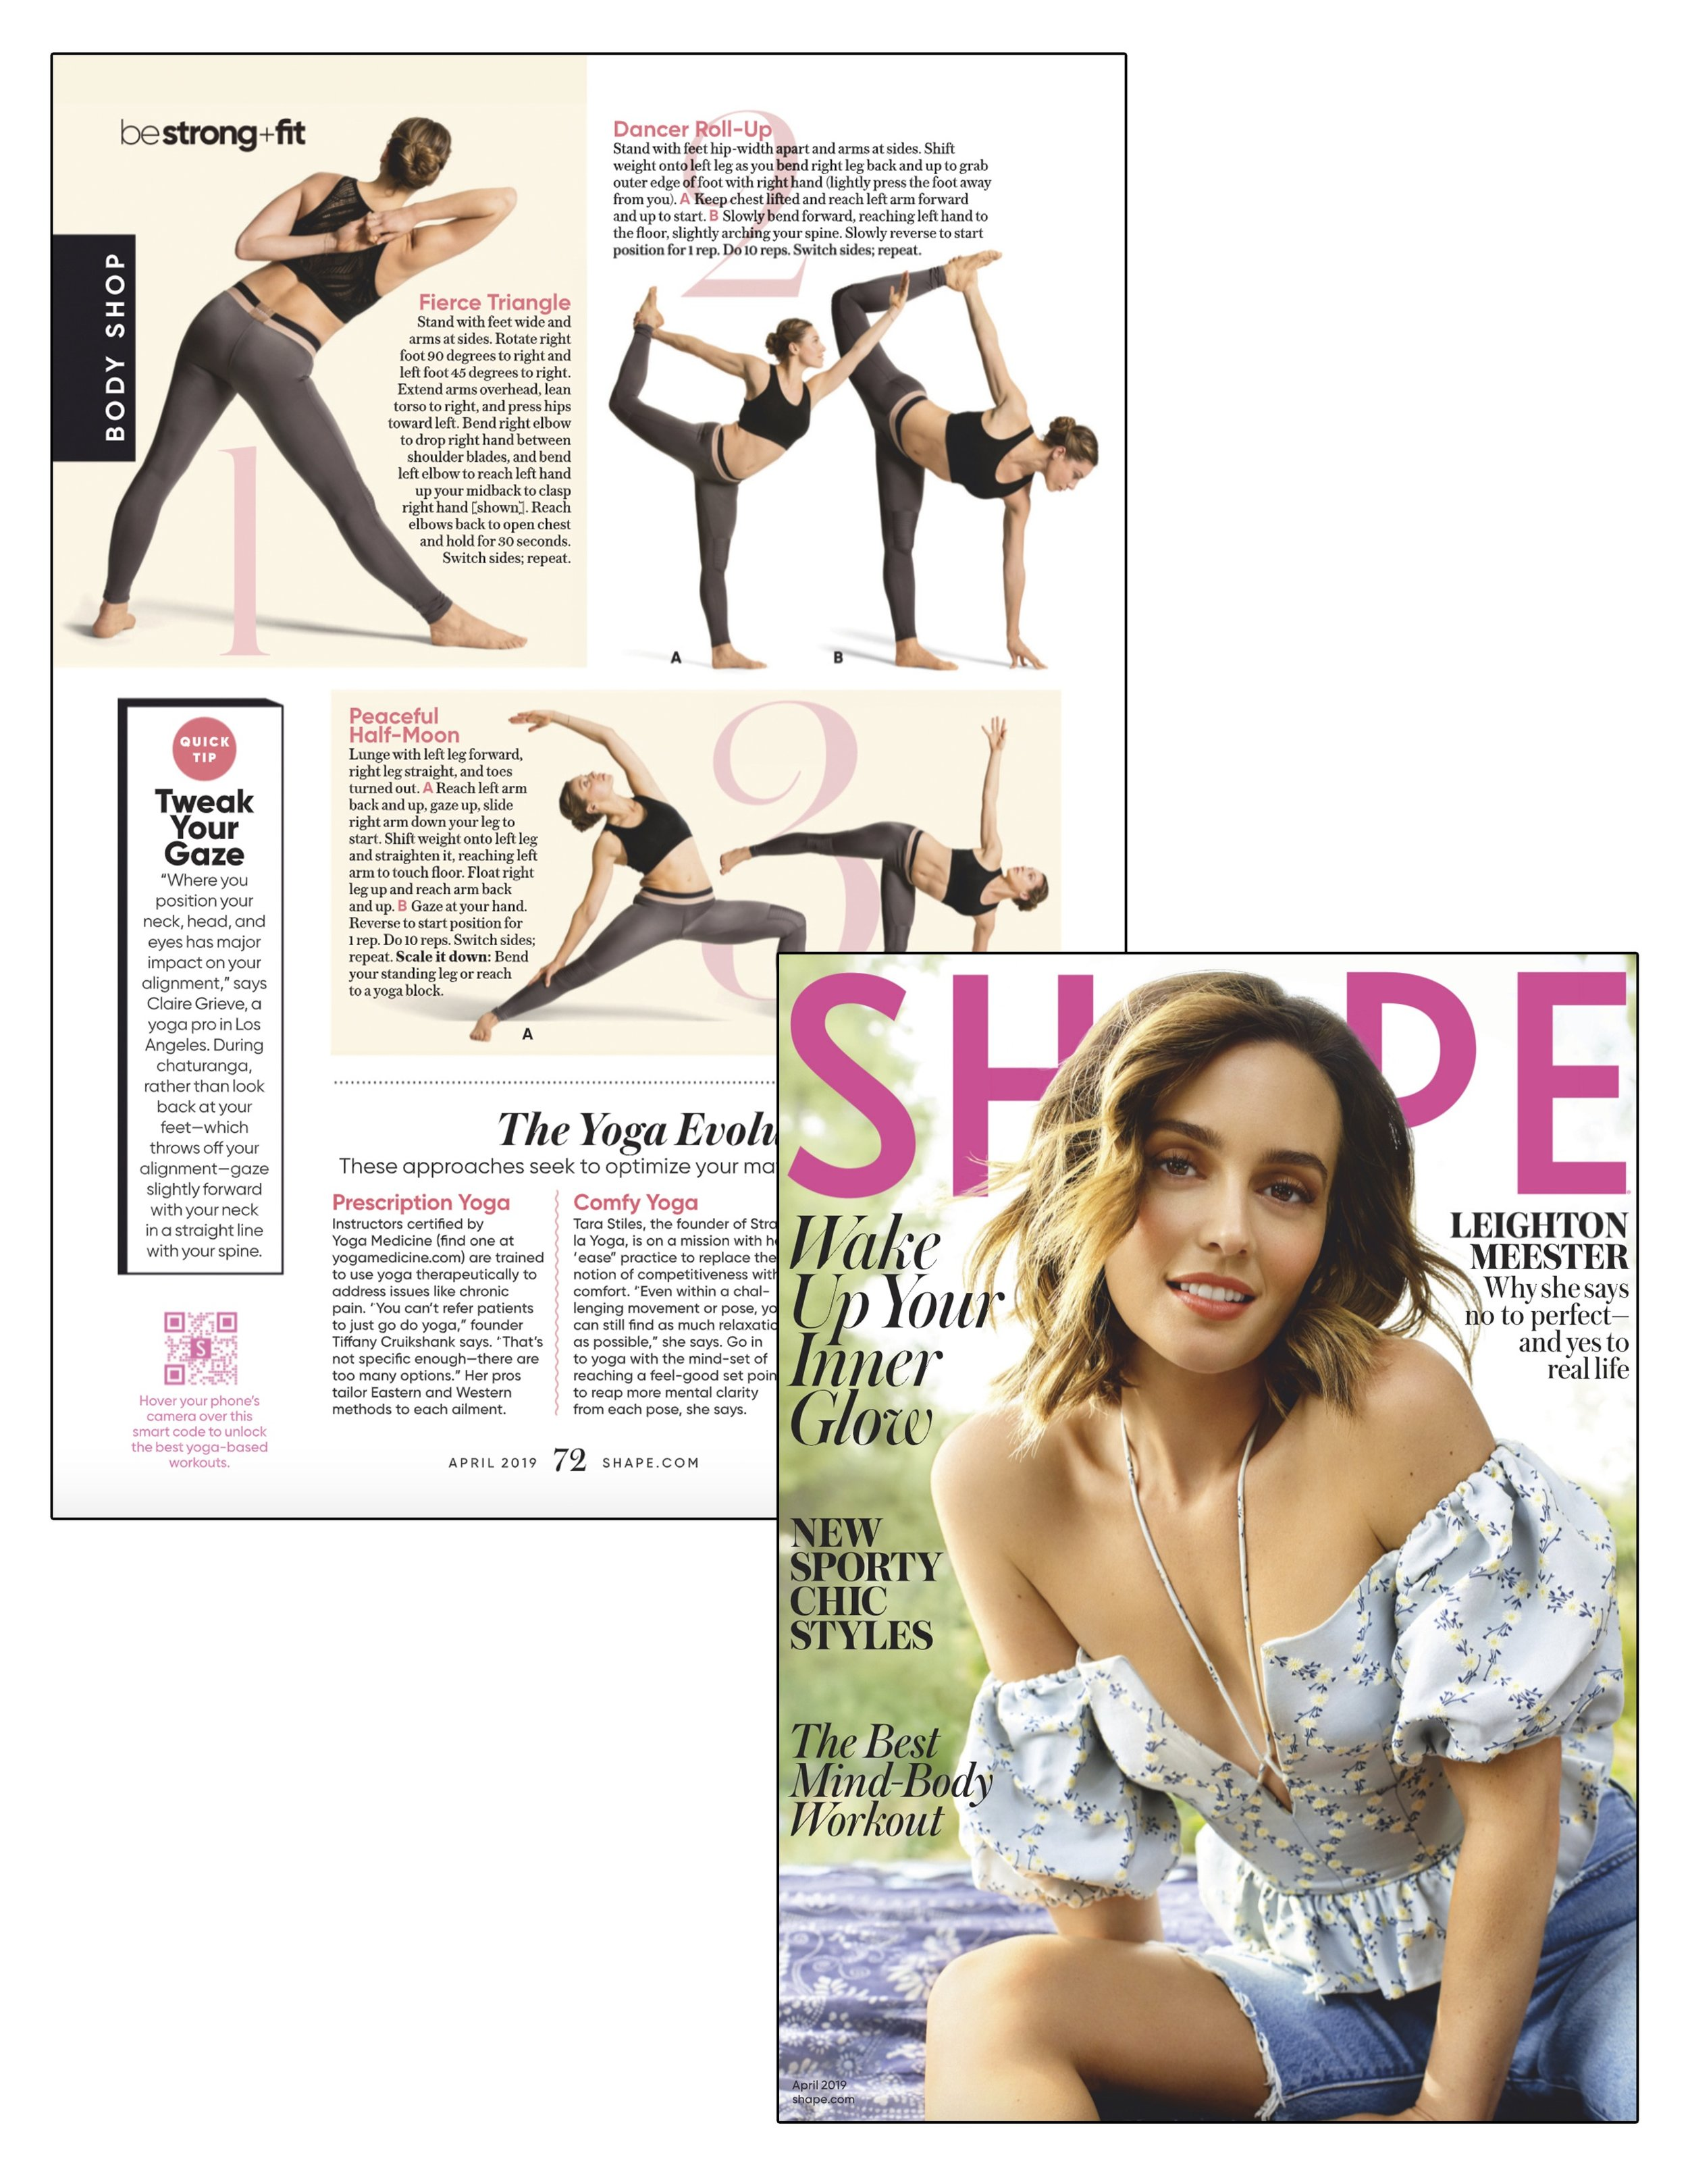 April 2019 - SHAPE Magazine - Claire Grieve.jpg